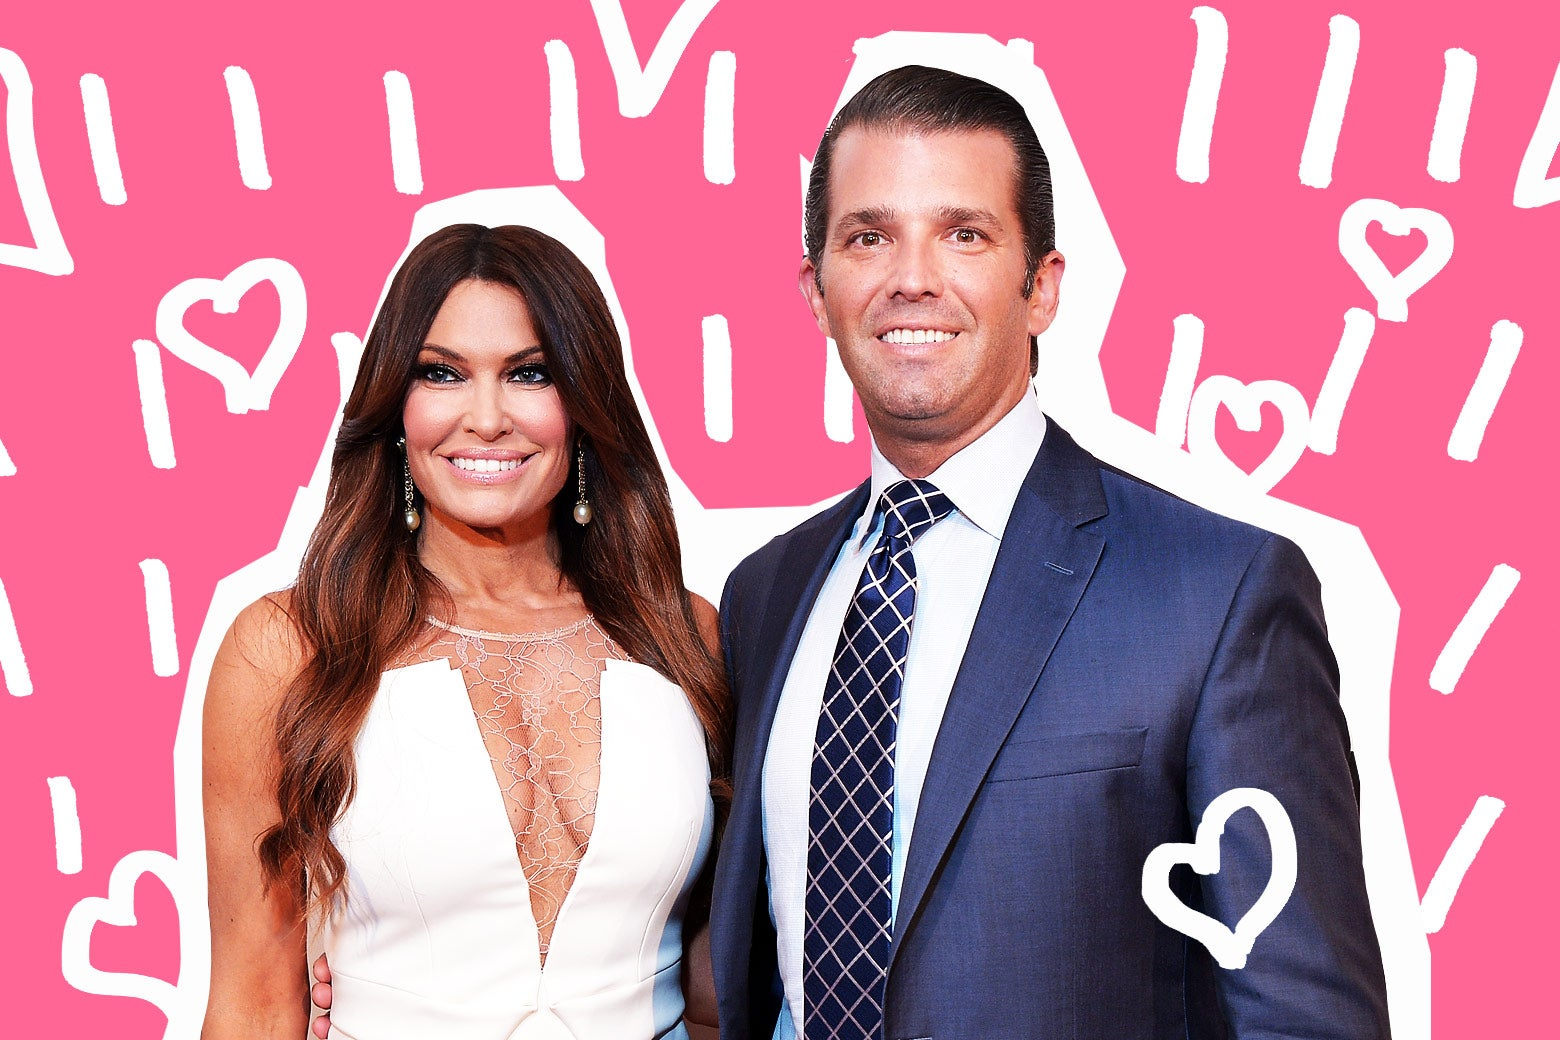 Donald Trump Jr. and Kimberly Guilfoyle surrounded by hearts.